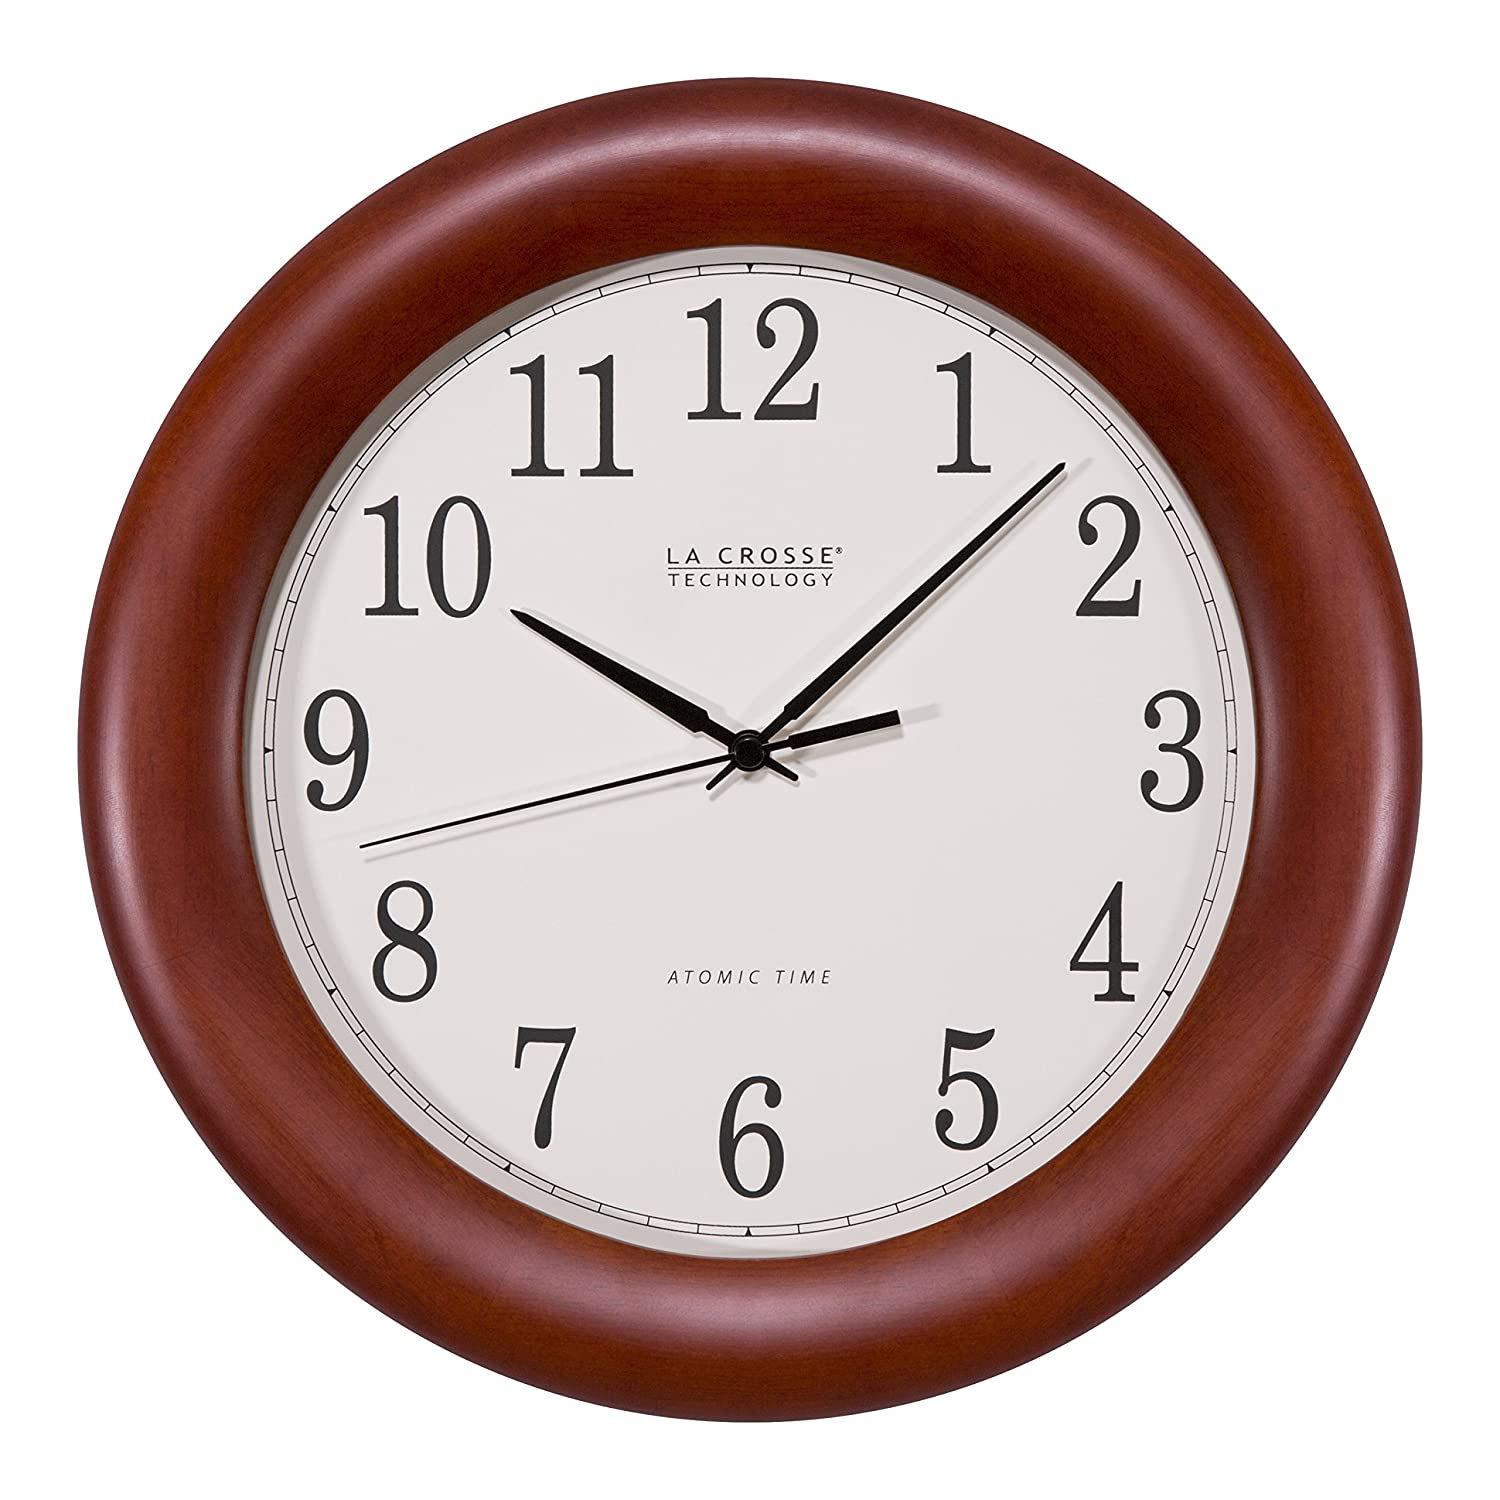 worksheet Images Of A Clock amazon com la crosse technology wt 3122a 12 inch wood atomic analog clock home kitchen